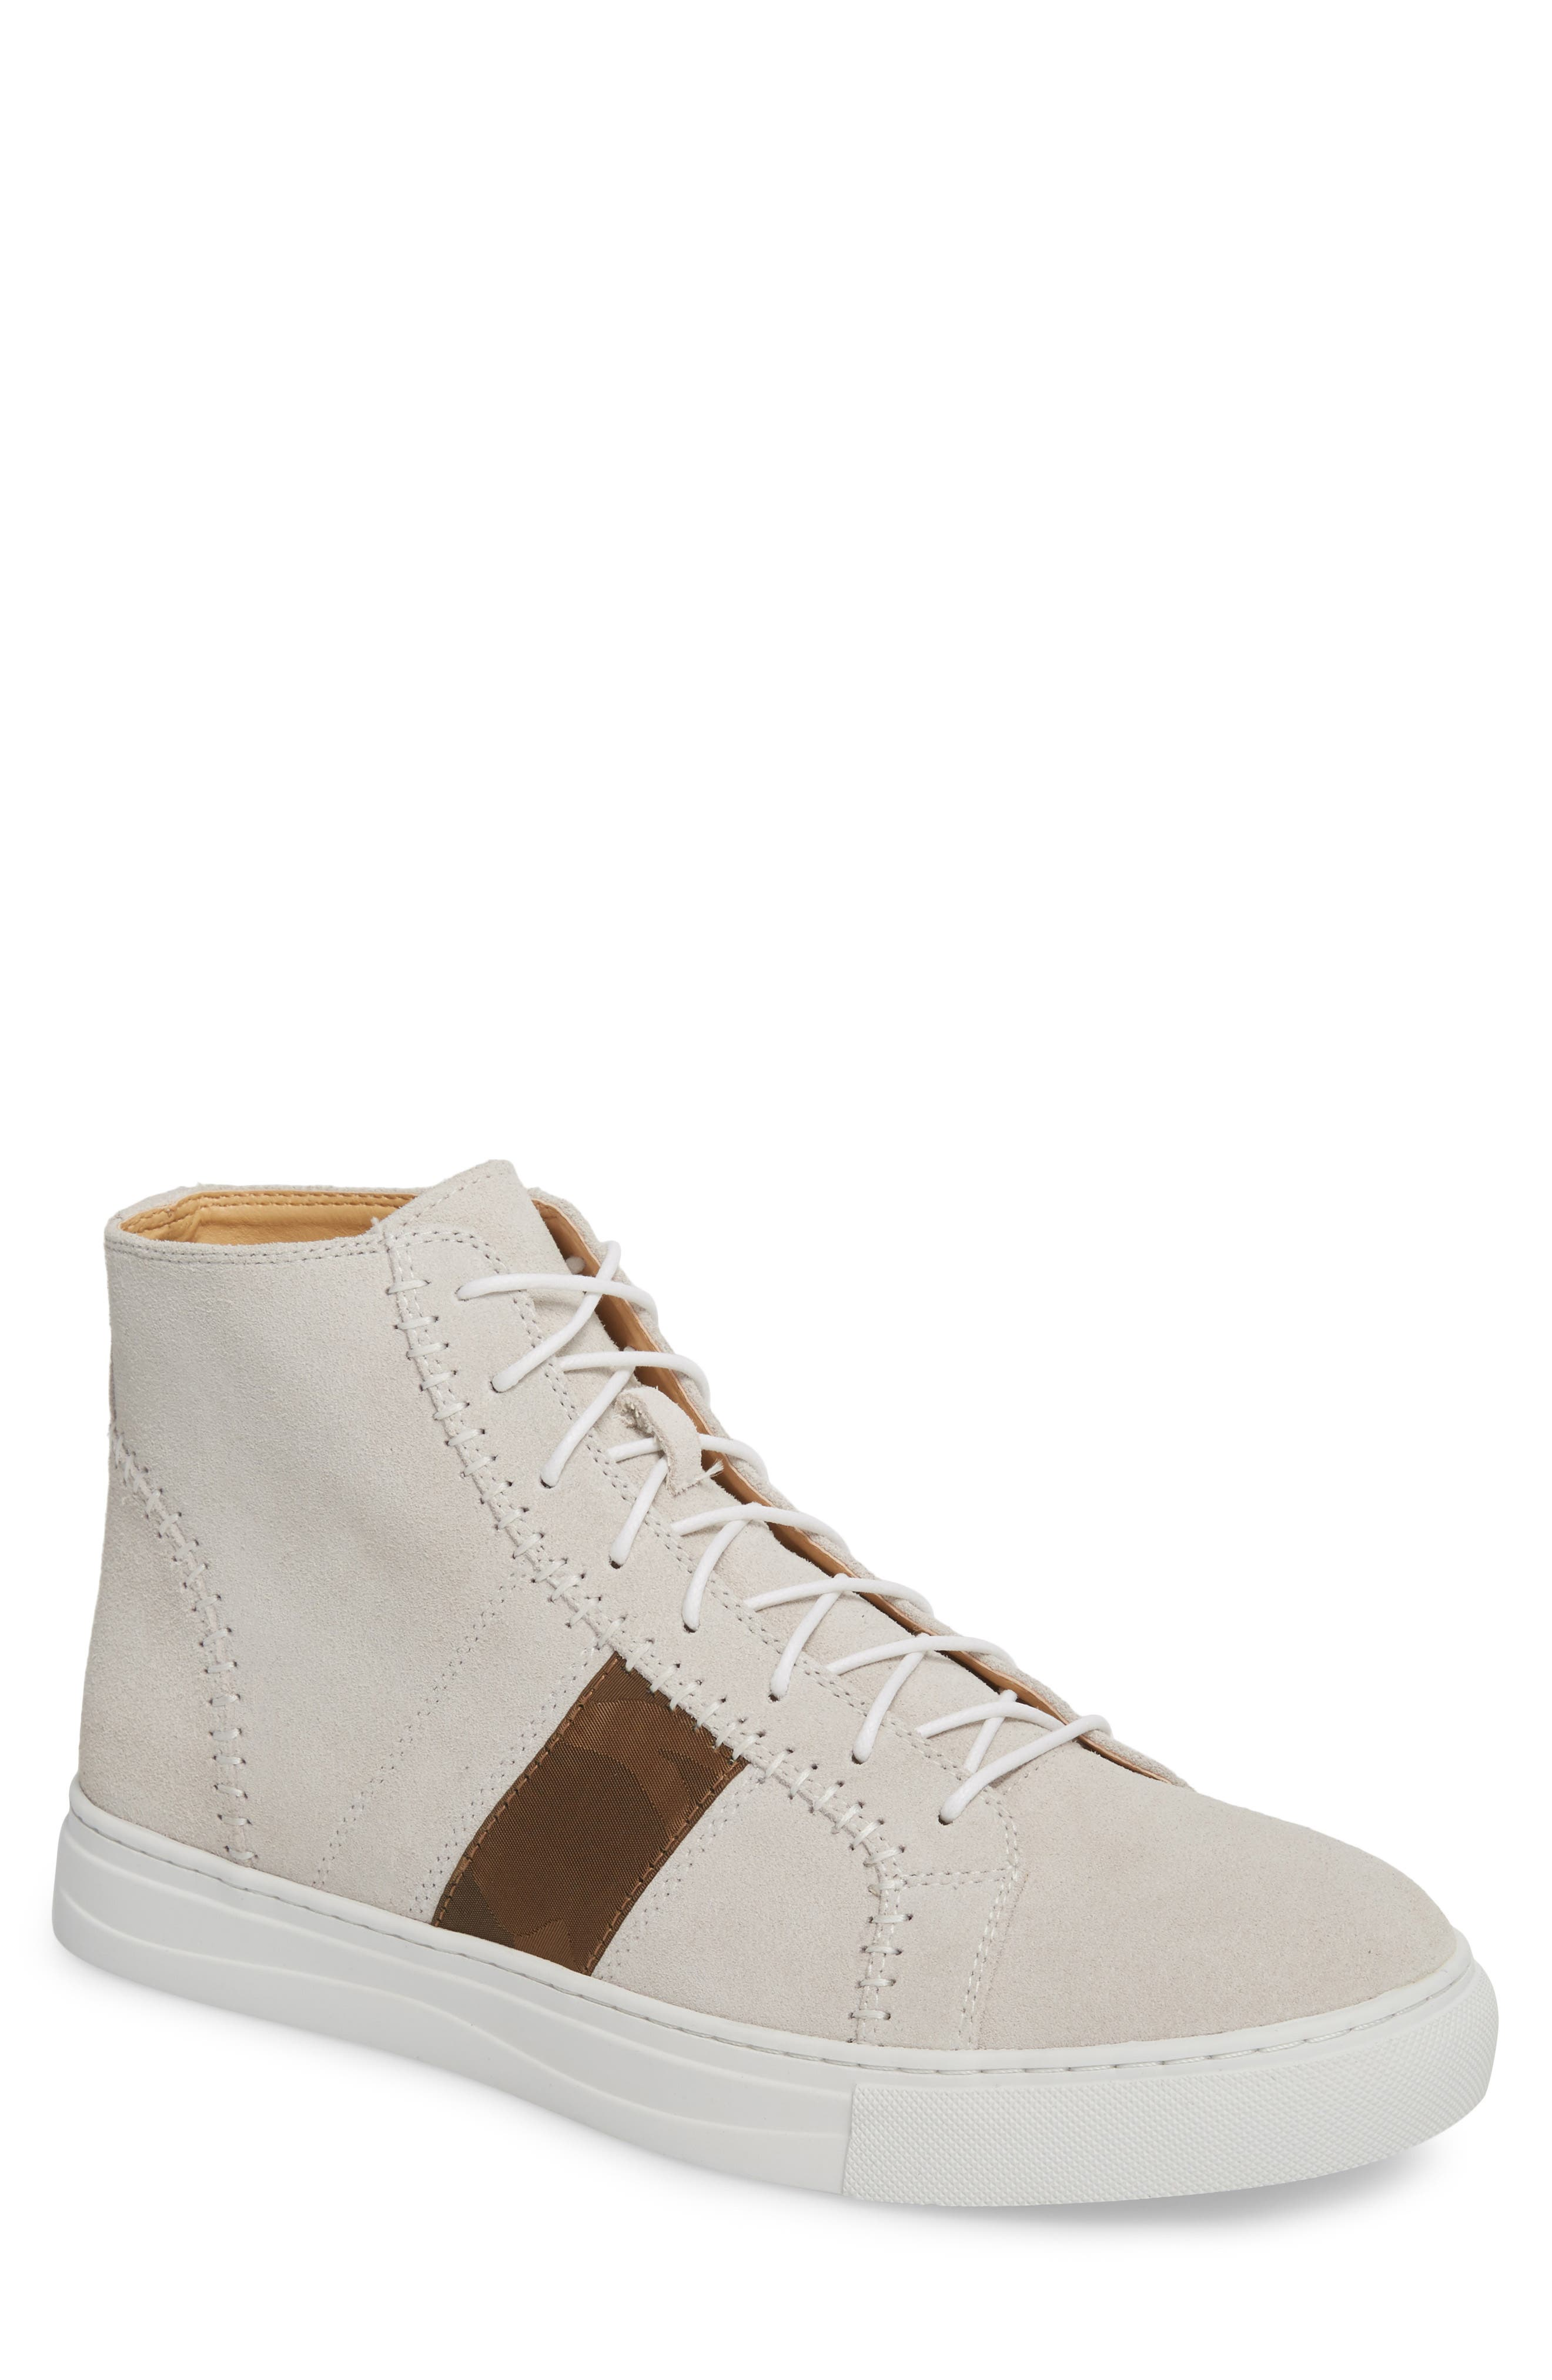 High Top Sneaker,                         Main,                         color, White Suede